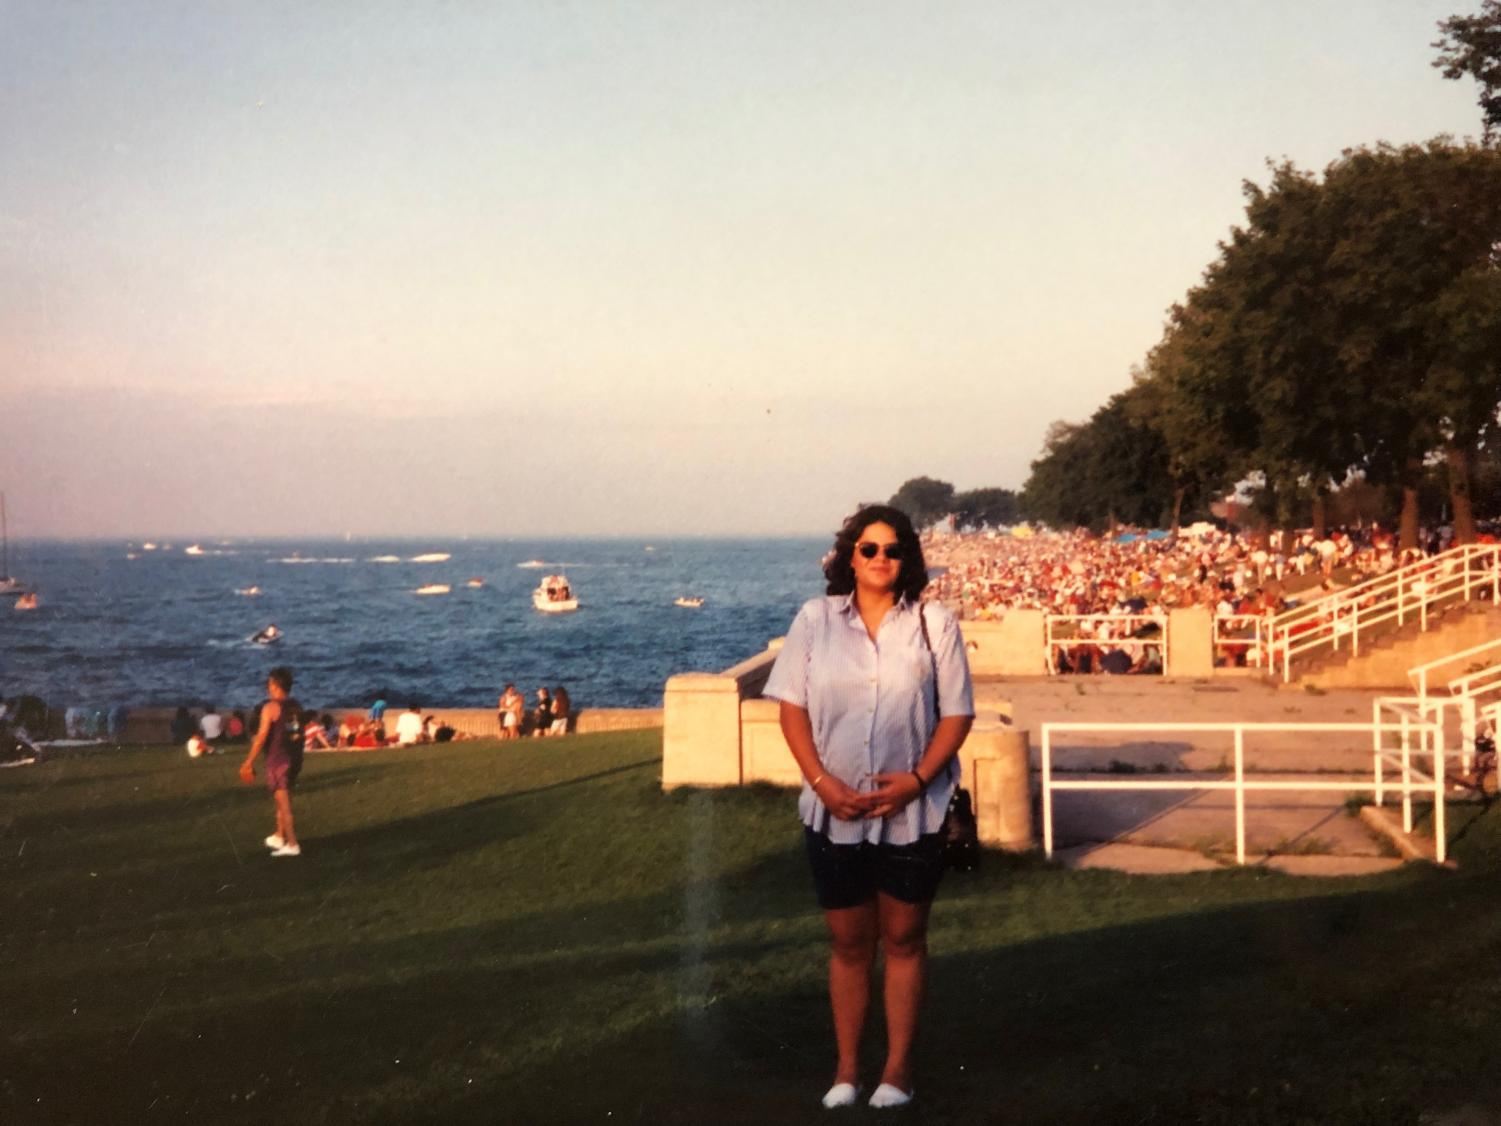 After obtaining her visa card and immigrating to the U.S. in 1992, Arcelia Salinas visits The Shedd Aquarium in Chicago.